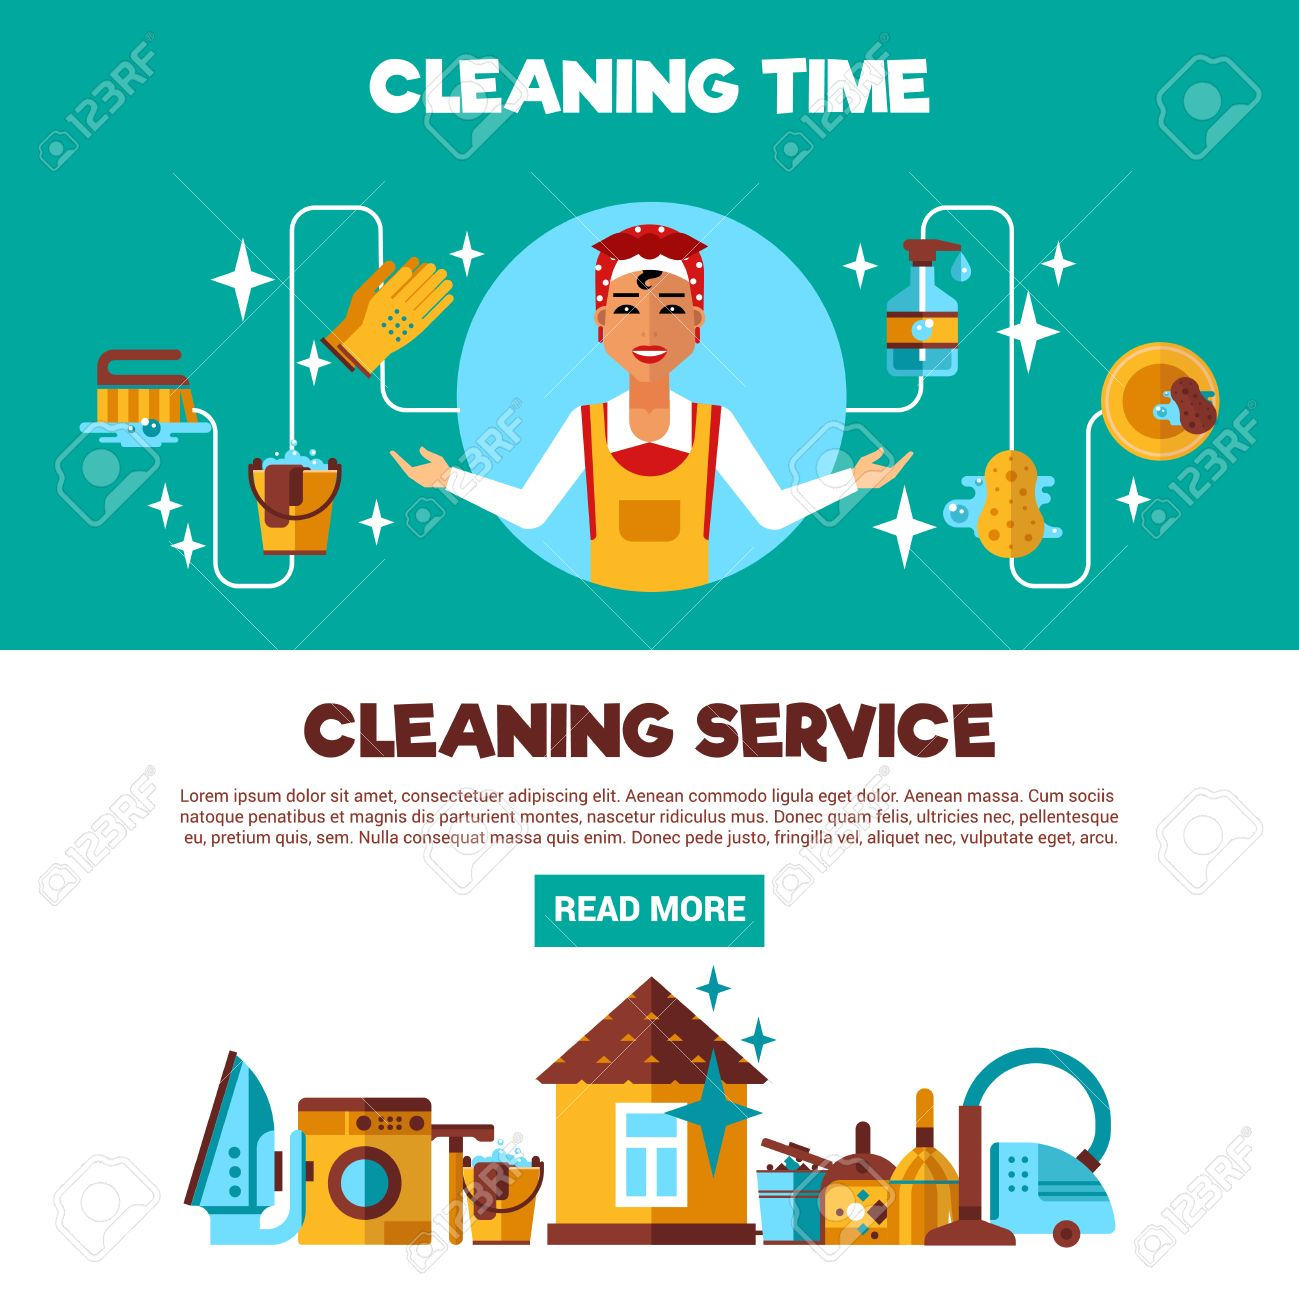 housekeeping full service cleaning and ironing 2 flat housekeeping full service cleaning and ironing 2 flat informative banners advertisement webpage abstract isolated vector